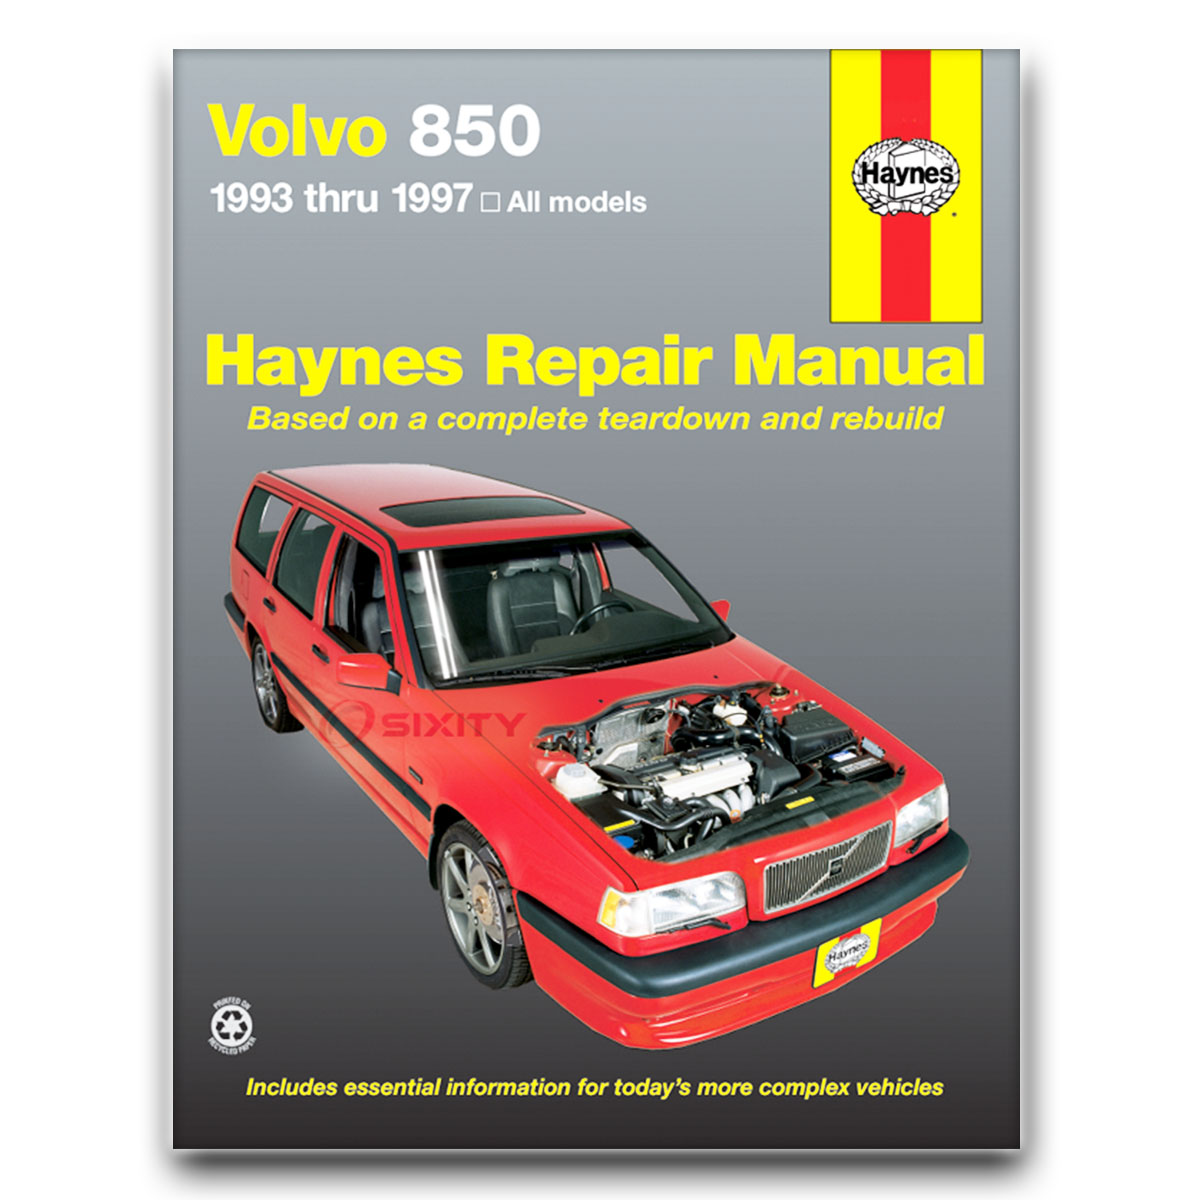 volvo 850 owners manual today manual guide trends sample u2022 rh brookejasmine co Volvo 850 R Volvo 850 R